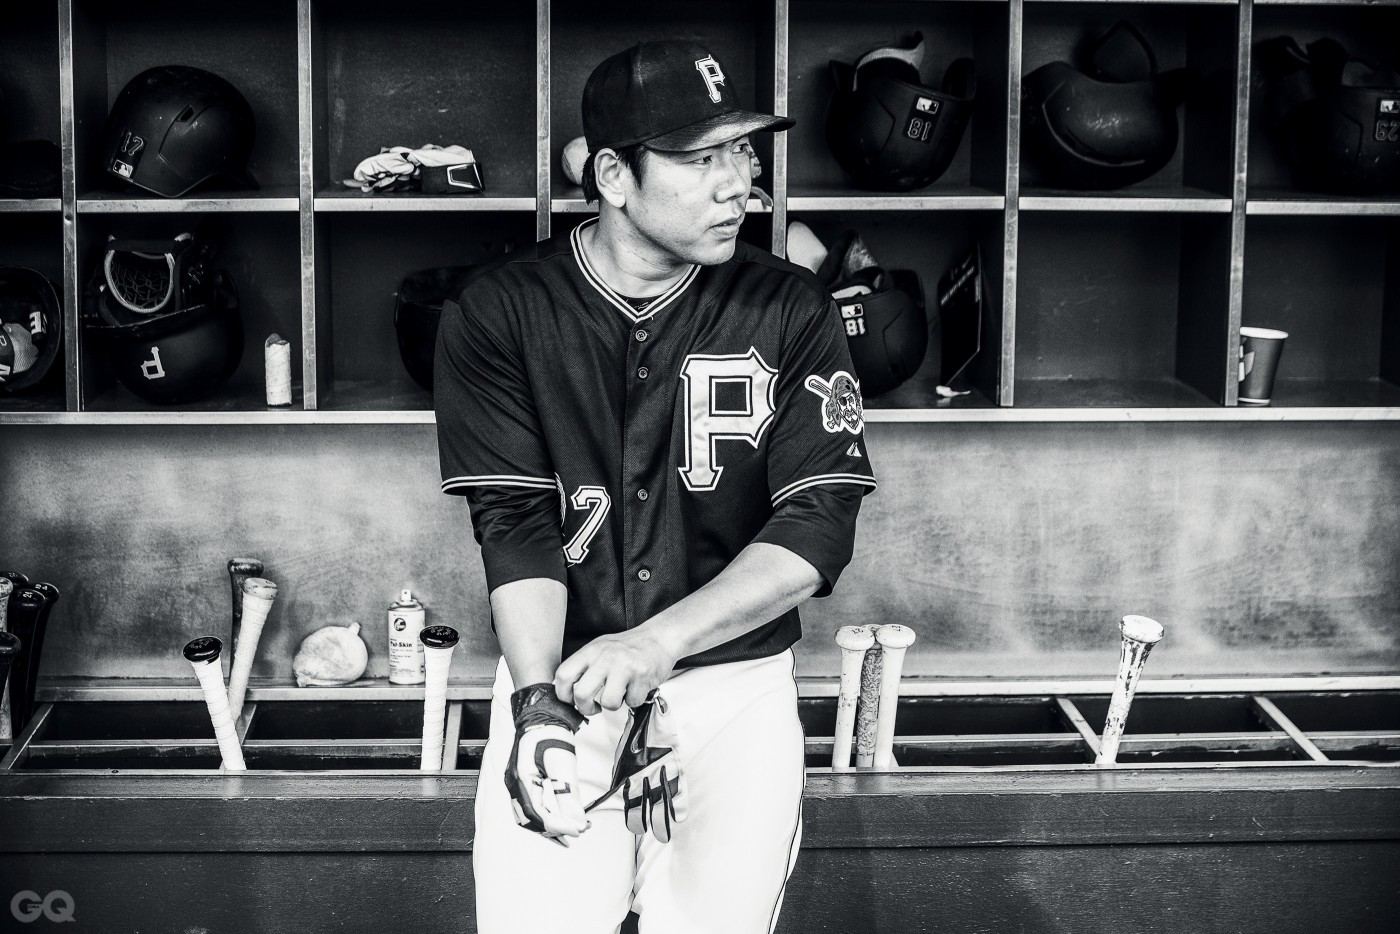 PITTSBURGH, PA - AUGUST 21: (EDITORS NOTE: Image has been converted to black and white) Jung Ho Kang #27 of the Pittsburgh Pirates looks on before the game against the San Francisco Giants at PNC Park on August 21, 2015 in Pittsburgh,Pennsylvania. (Photo by Rob Tringali/SportsChrome/Getty Images)